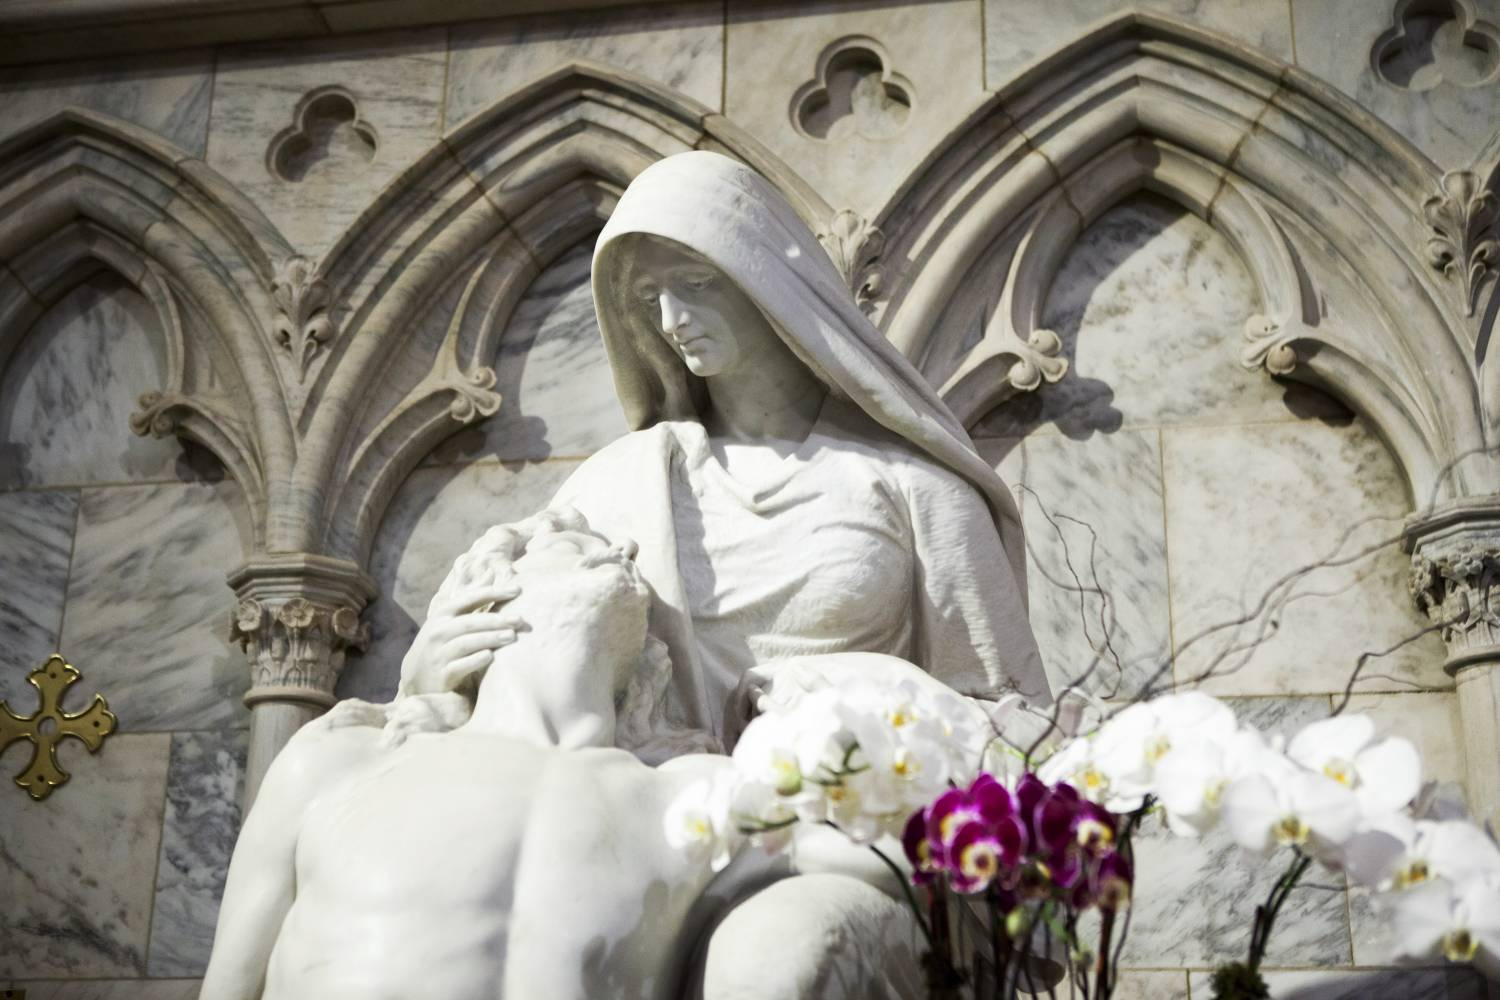 Sculpture at St. Patrick's Cathedral in Midtown Manhattan